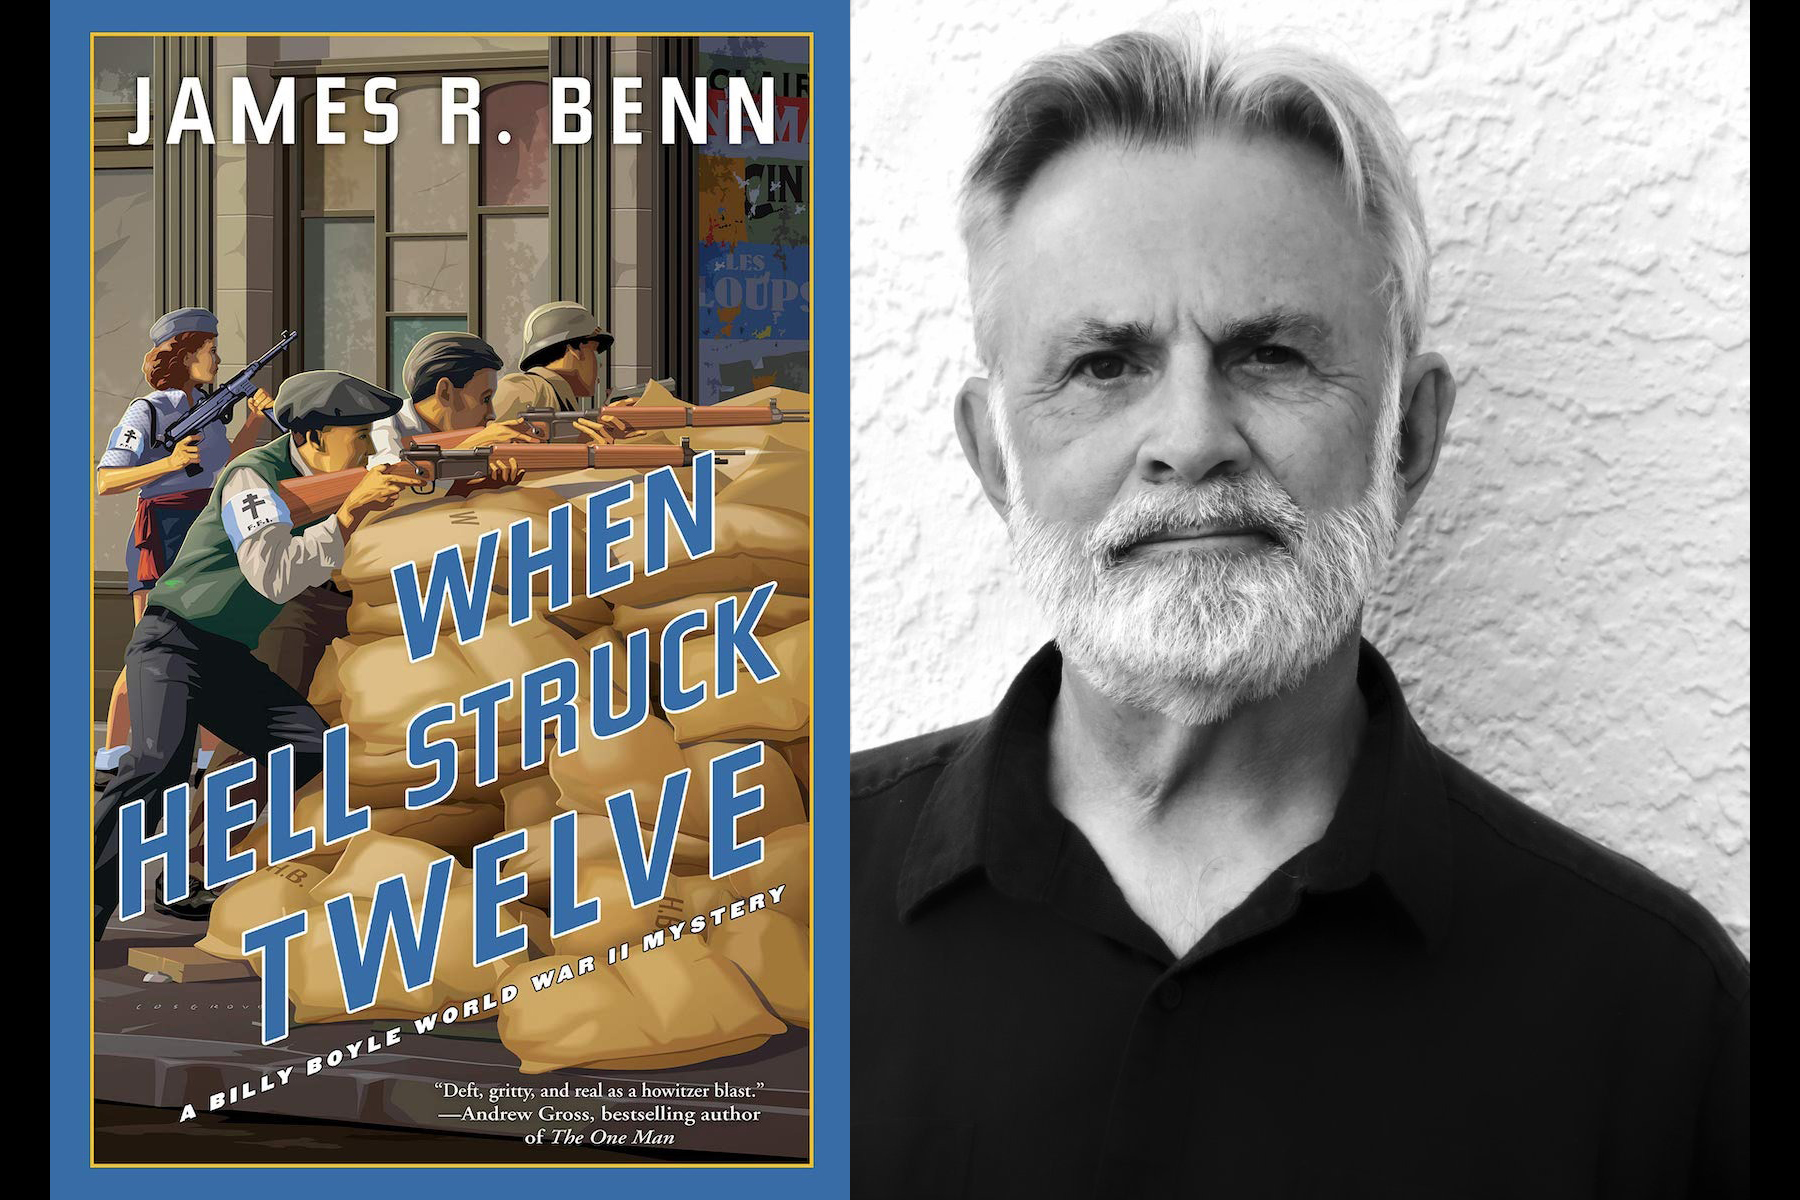 The Costs of War: James Benn's Latest Billy Boyle WWII Novel is Darker Story